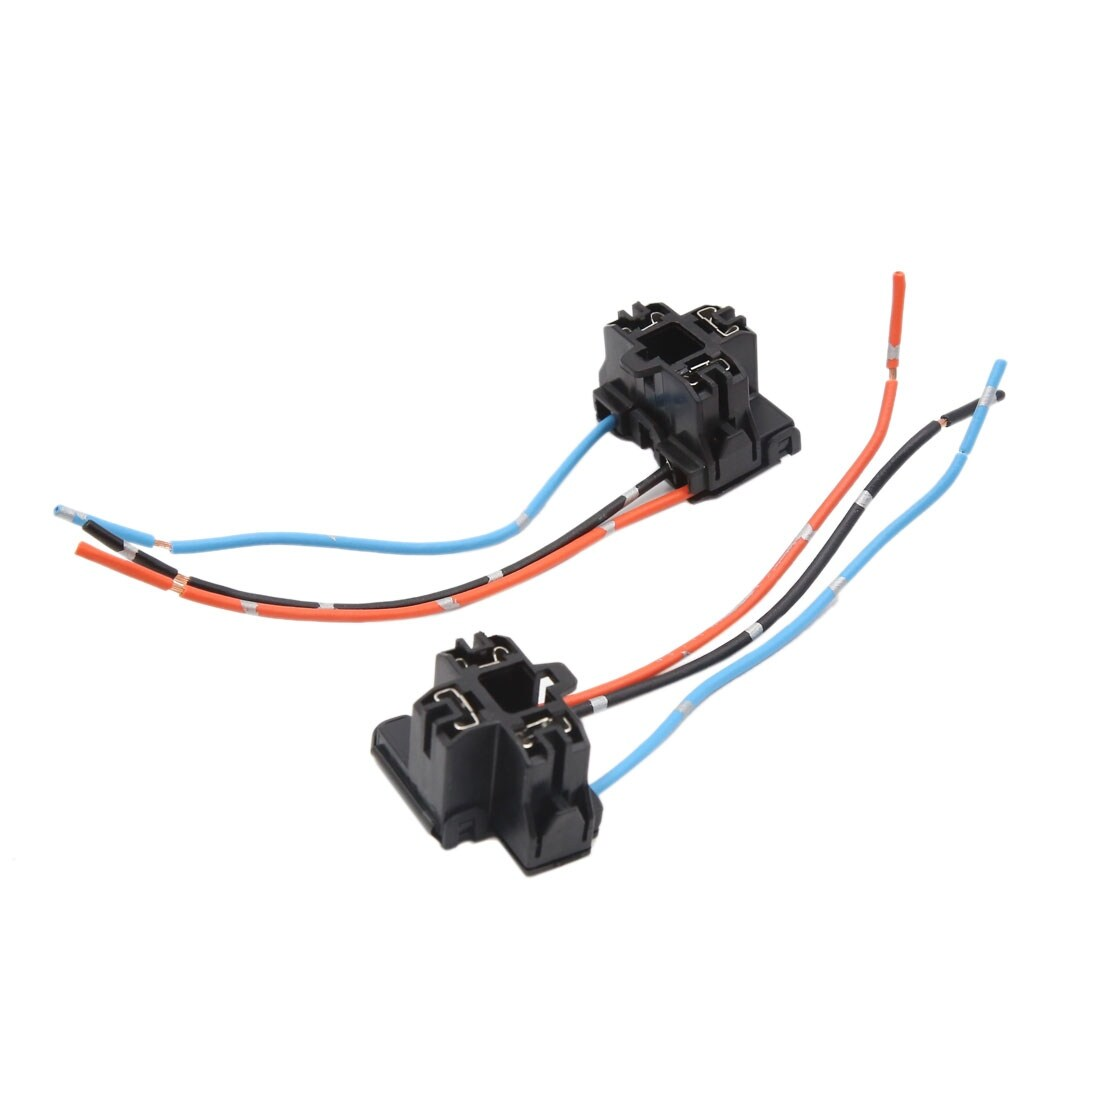 hight resolution of shop 2pcs plastic 3 terminal car h4 headlight fog lamp bulb wiring harness socket on sale free shipping on orders over 45 overstock 17597655